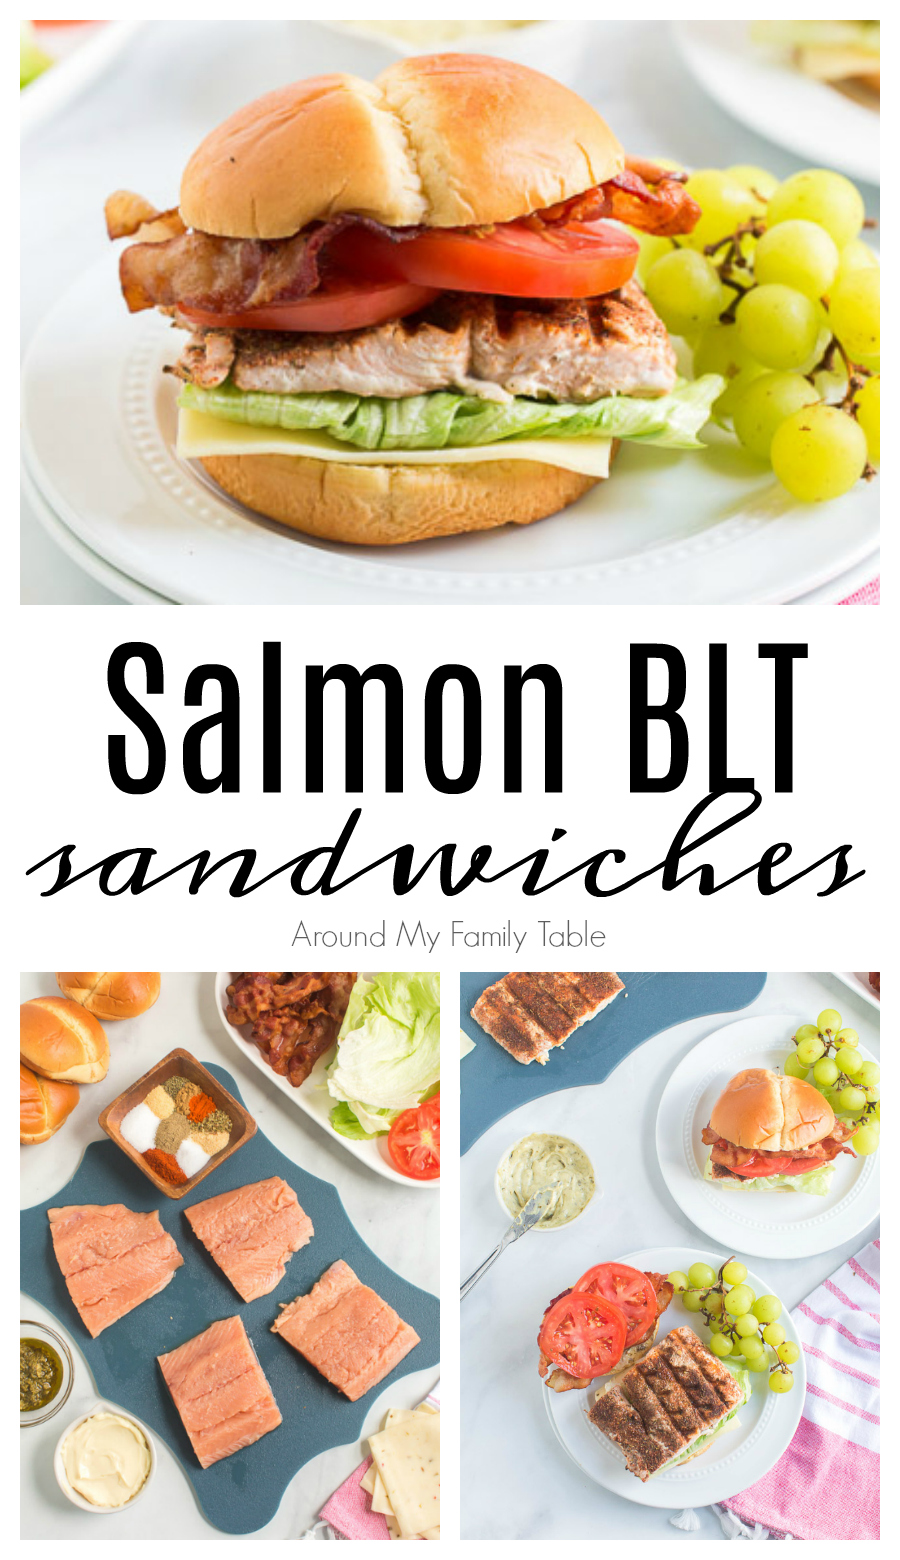 Grilled blackened salmon is delicious on its own but take it up a notch! Make this BLT sandwich recipe for a flavorful healthy lunch or dinner! via @slingmama